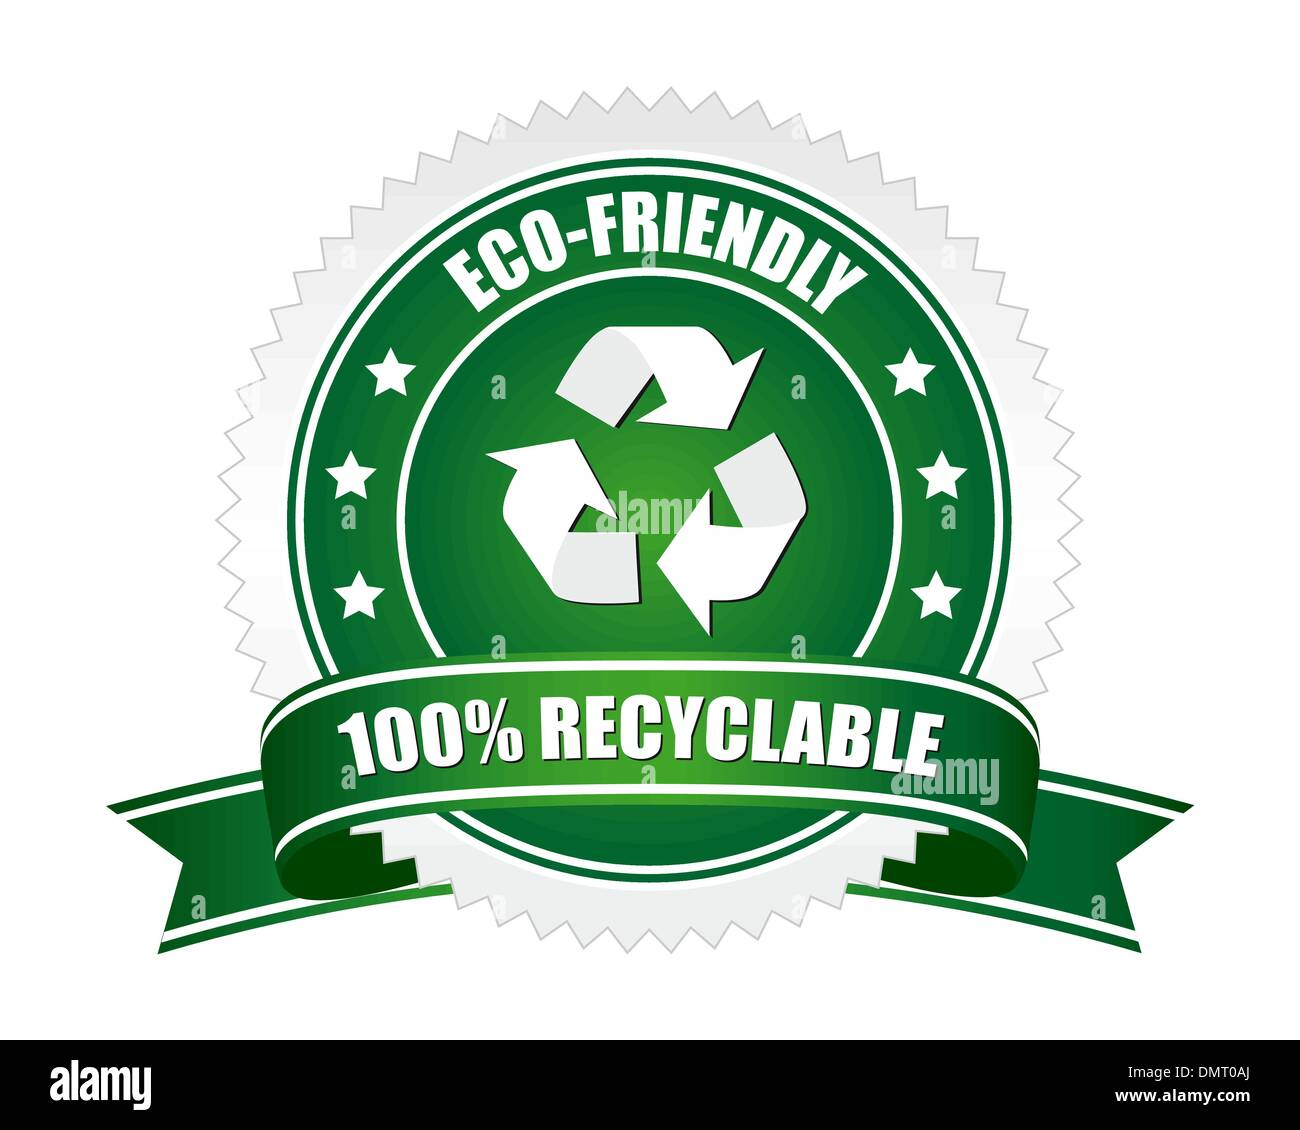 100% recyclable sign - Stock Image